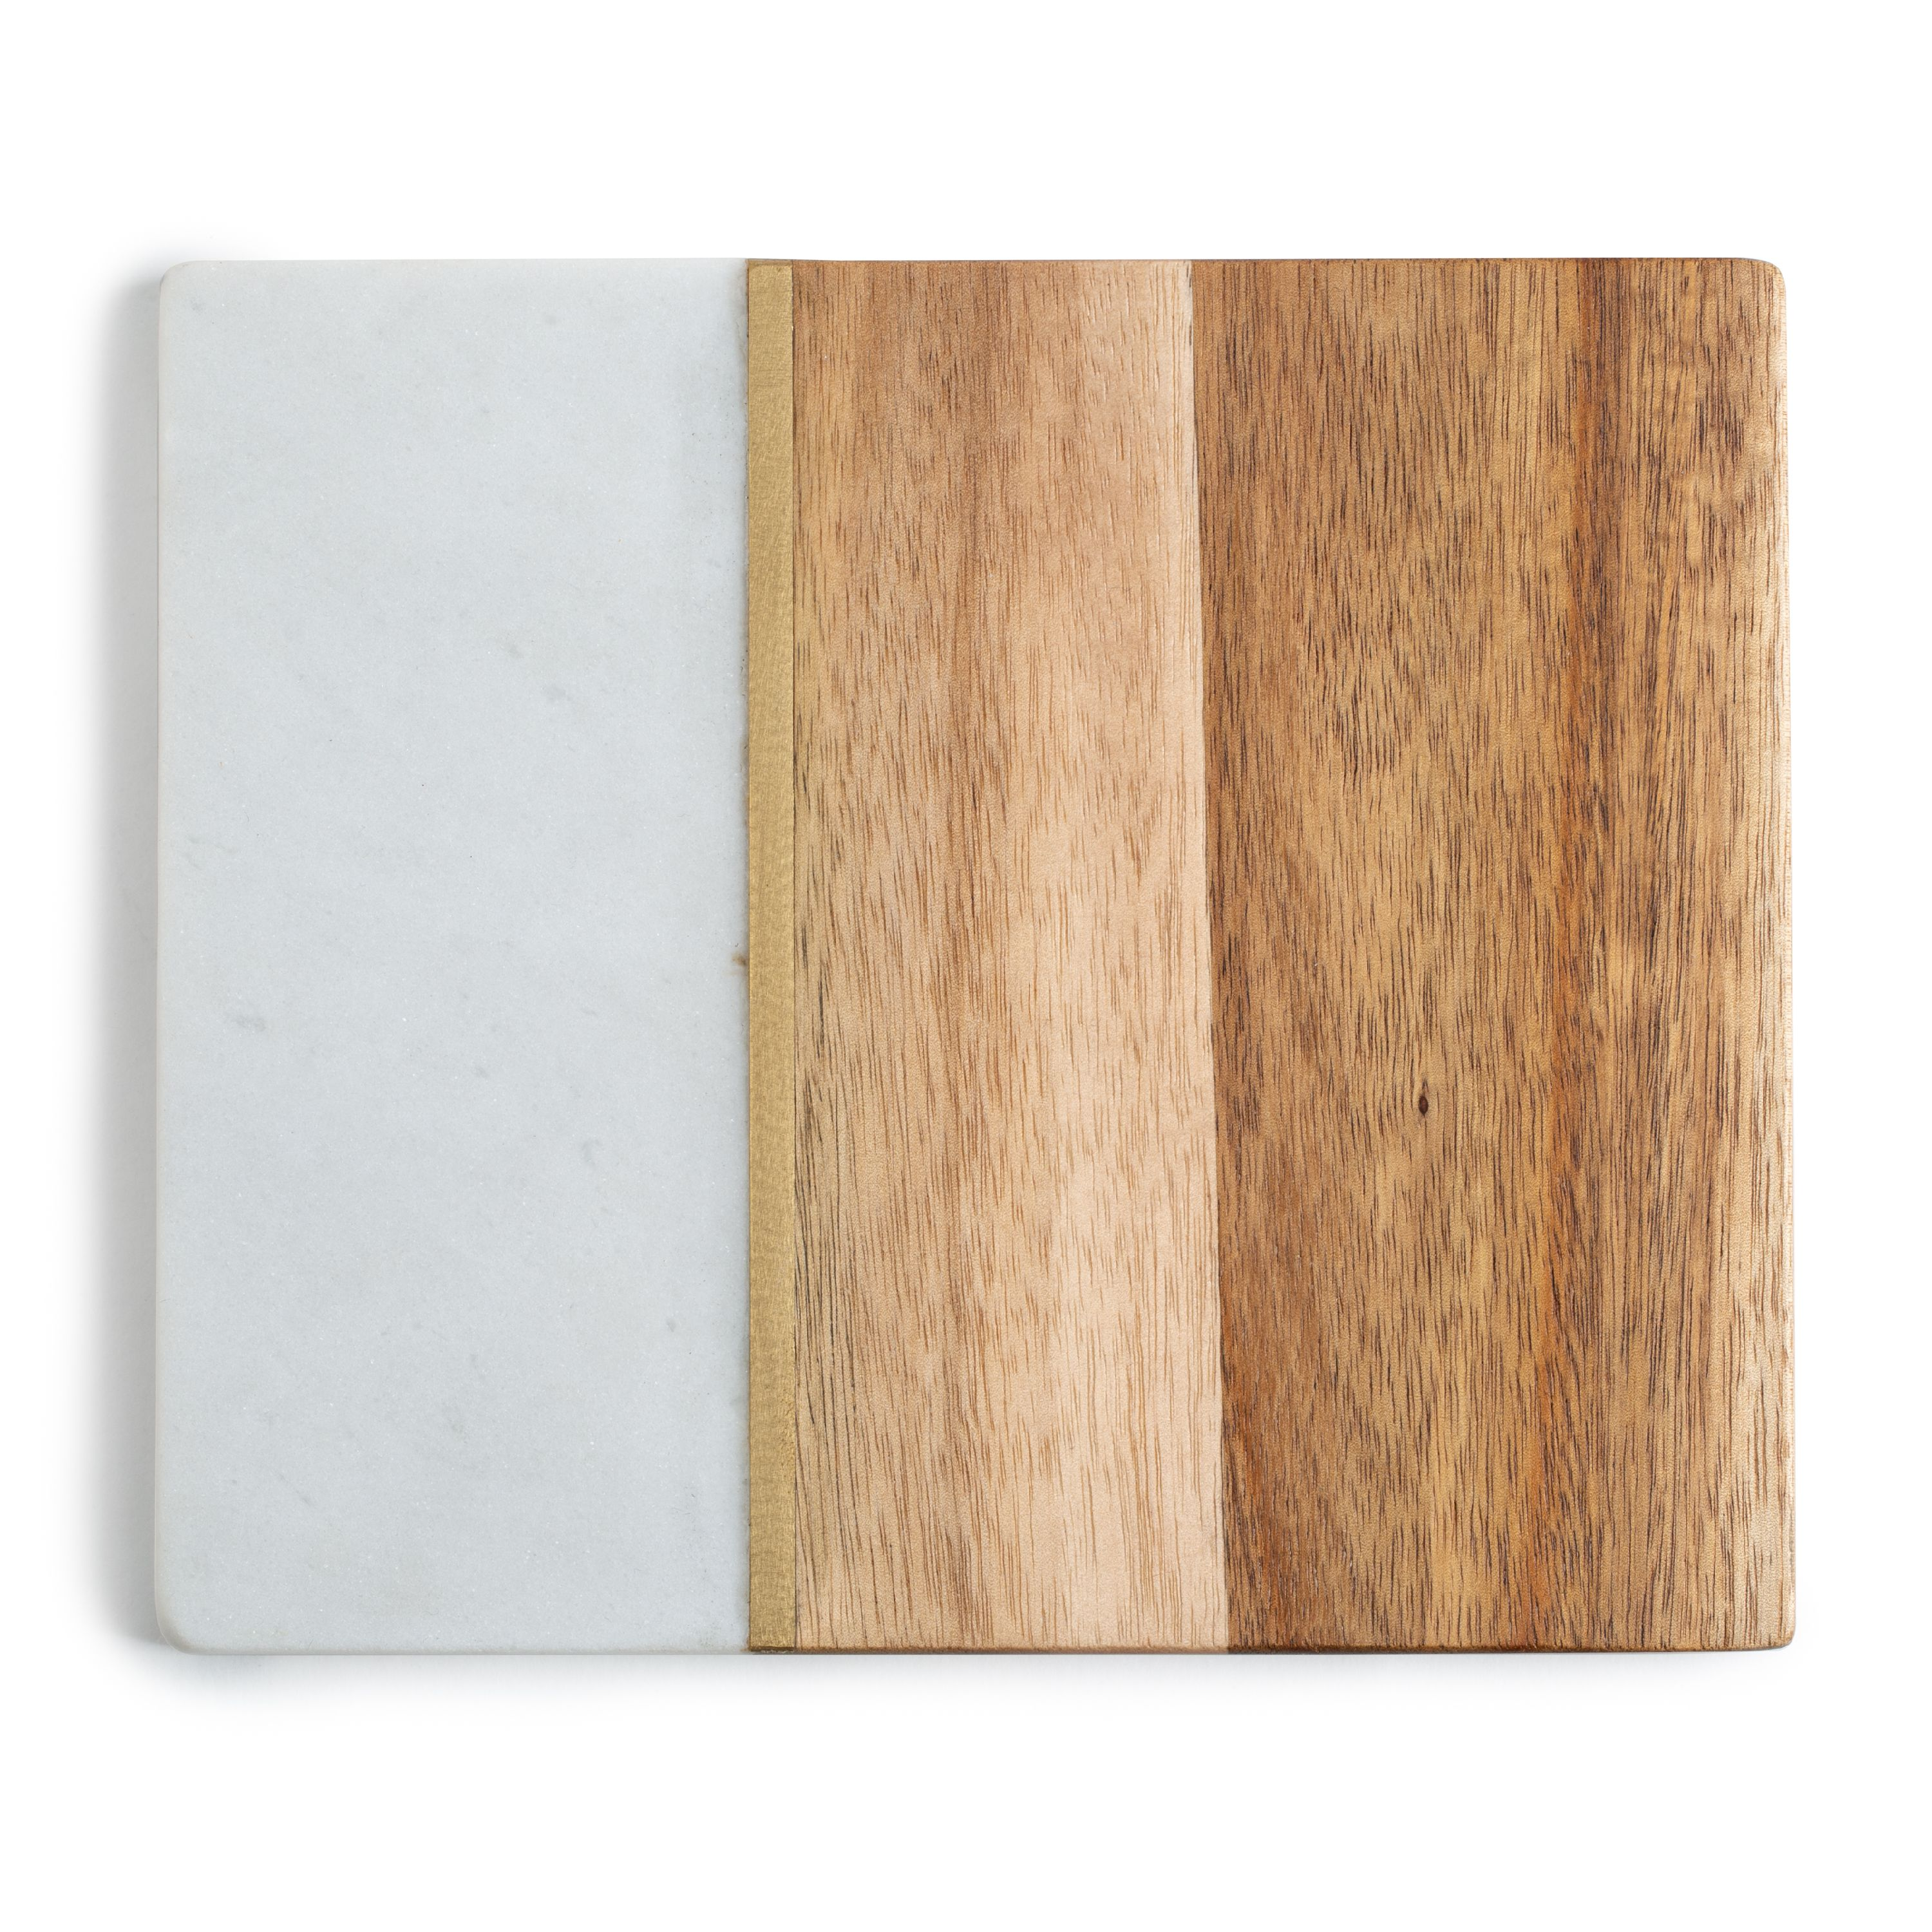 Better Homes & Gardens Trivet, Acacia Wood and Marble